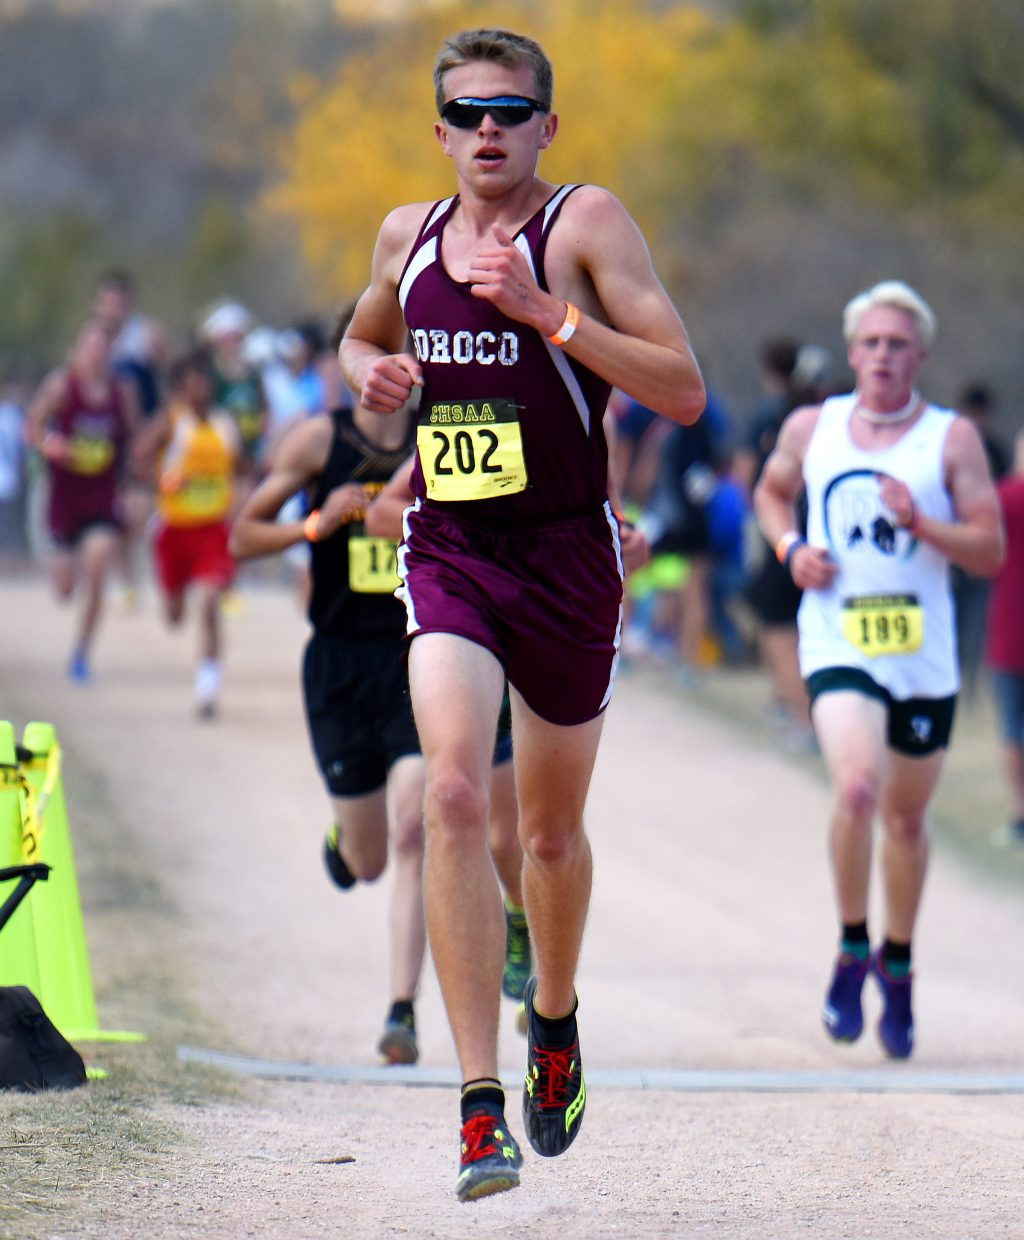 Soroco's Ben Kelley leads a pack of runners Saturday at the Class 2A state championships in Colorado Springs. He went on to finish fourth in the race.